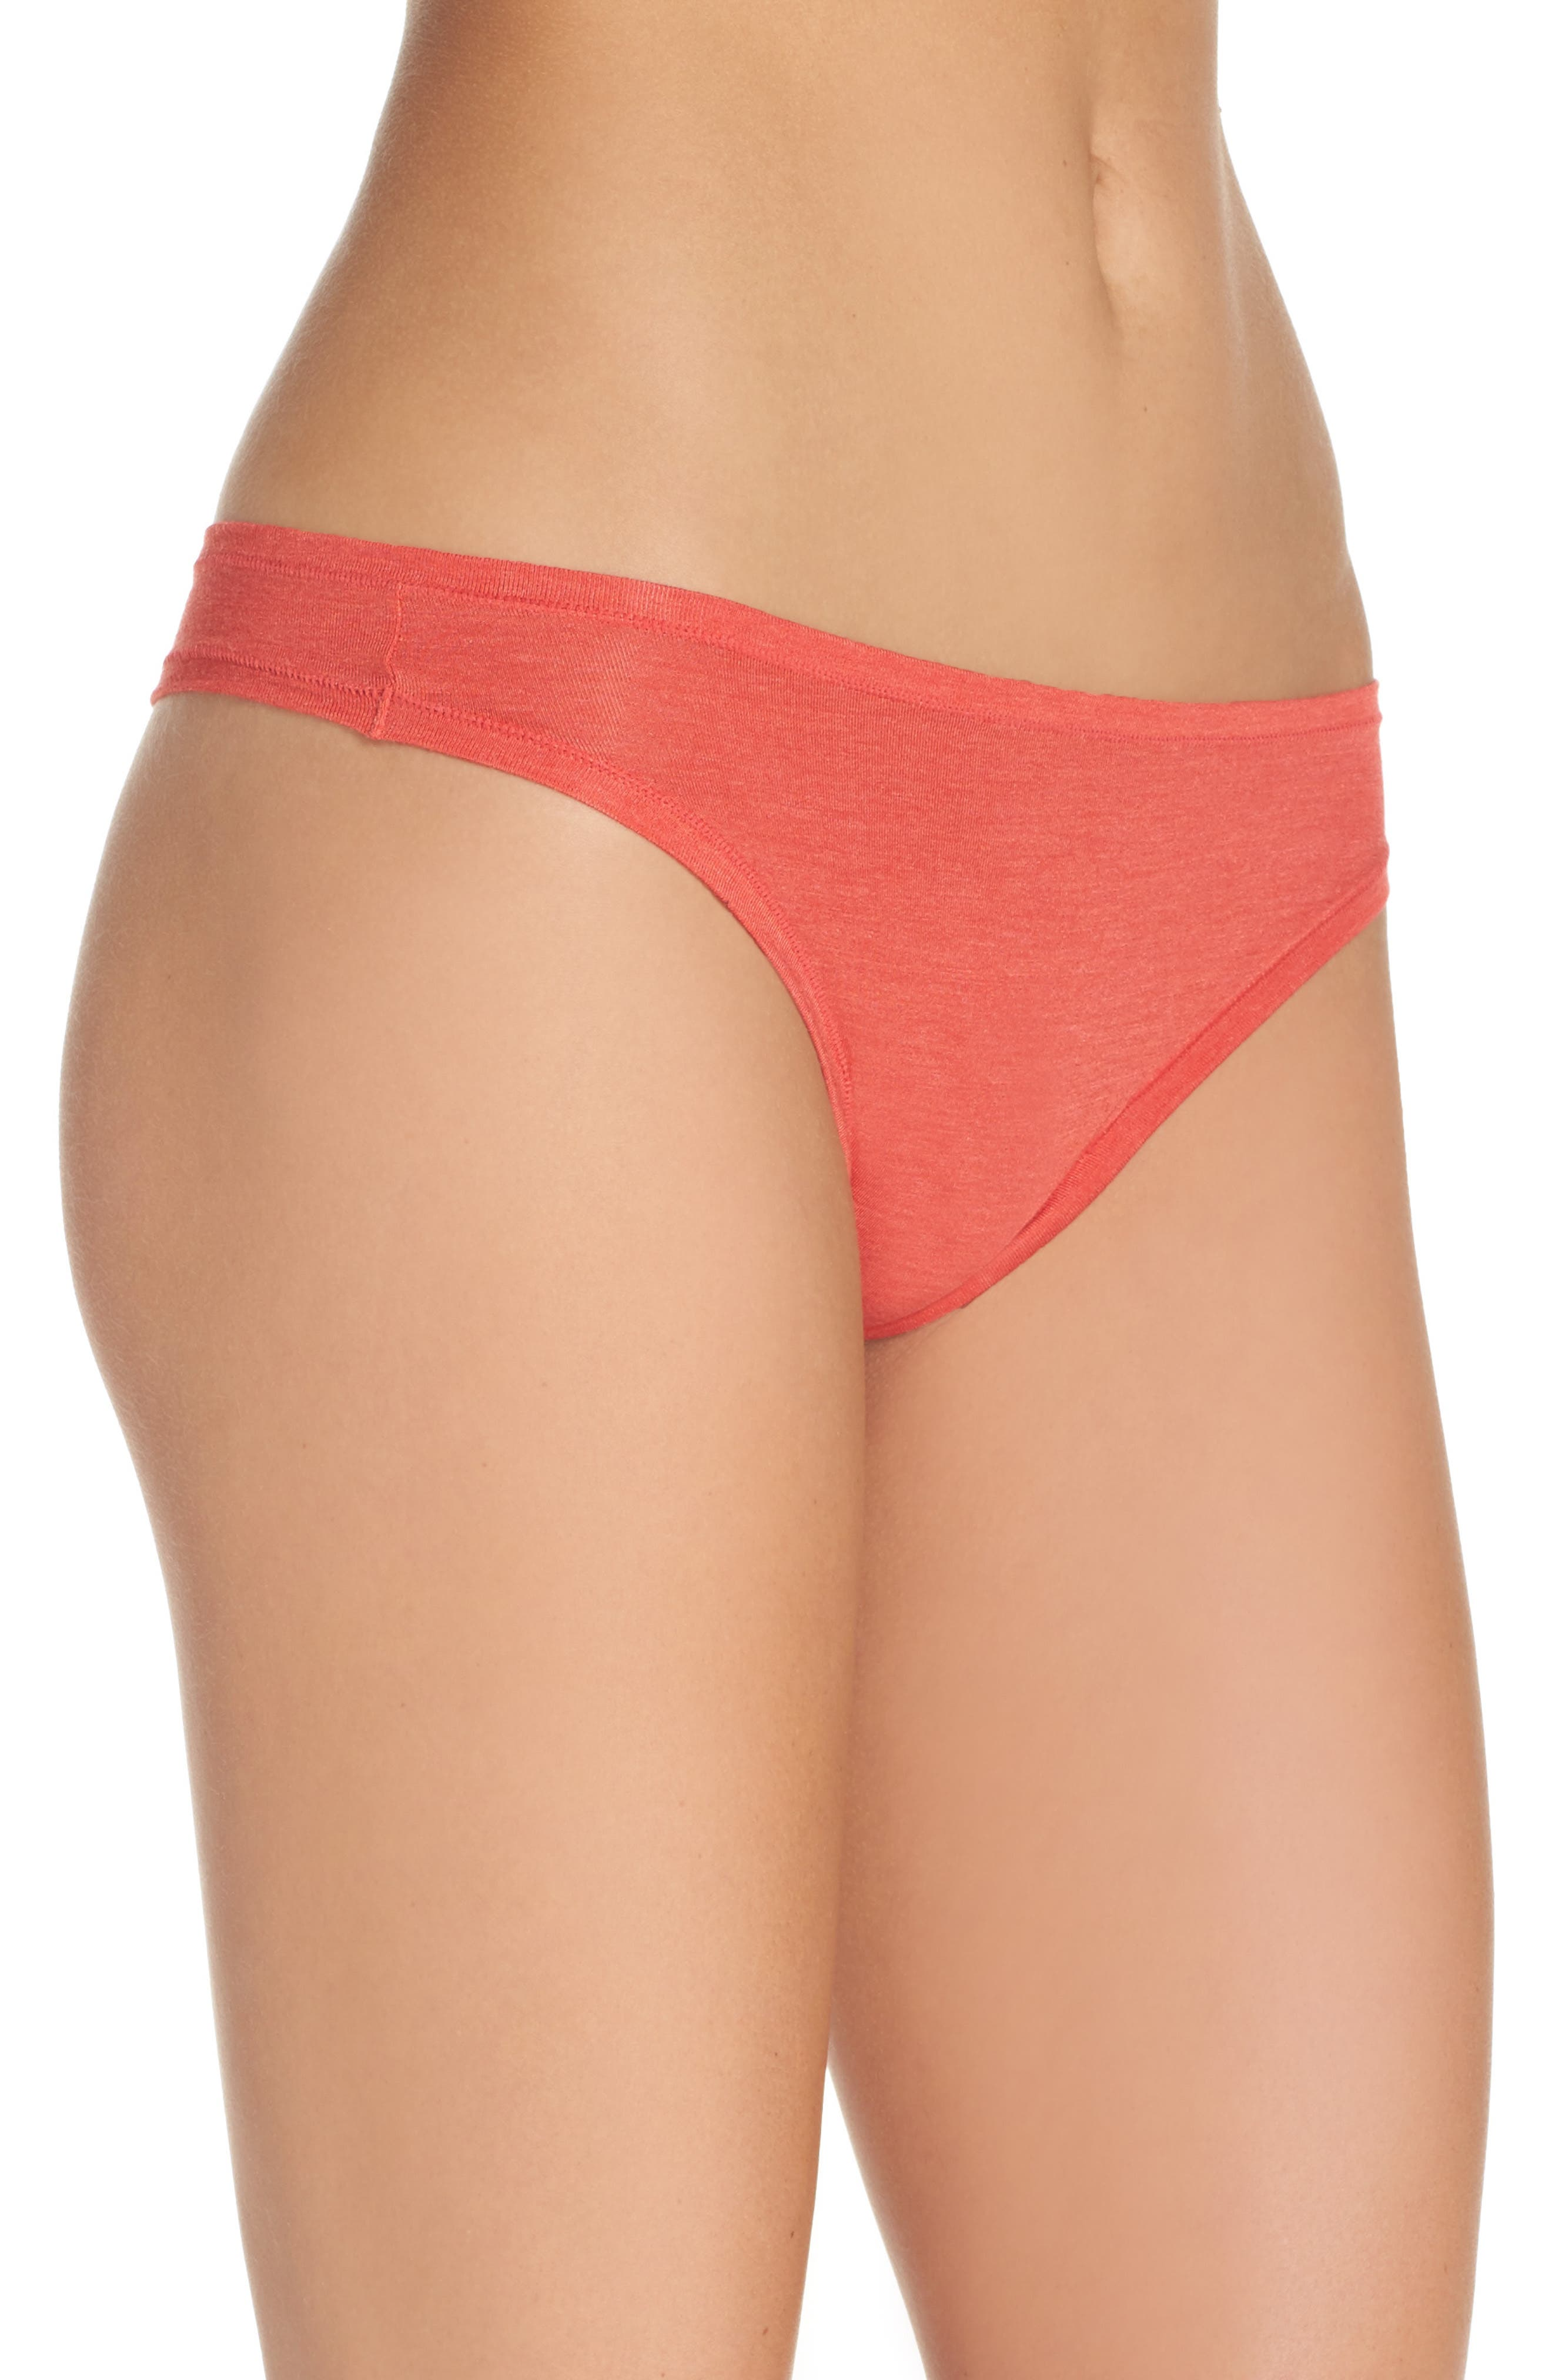 Bliss Essence Thong,                             Alternate thumbnail 2, color,                             Cherry Red